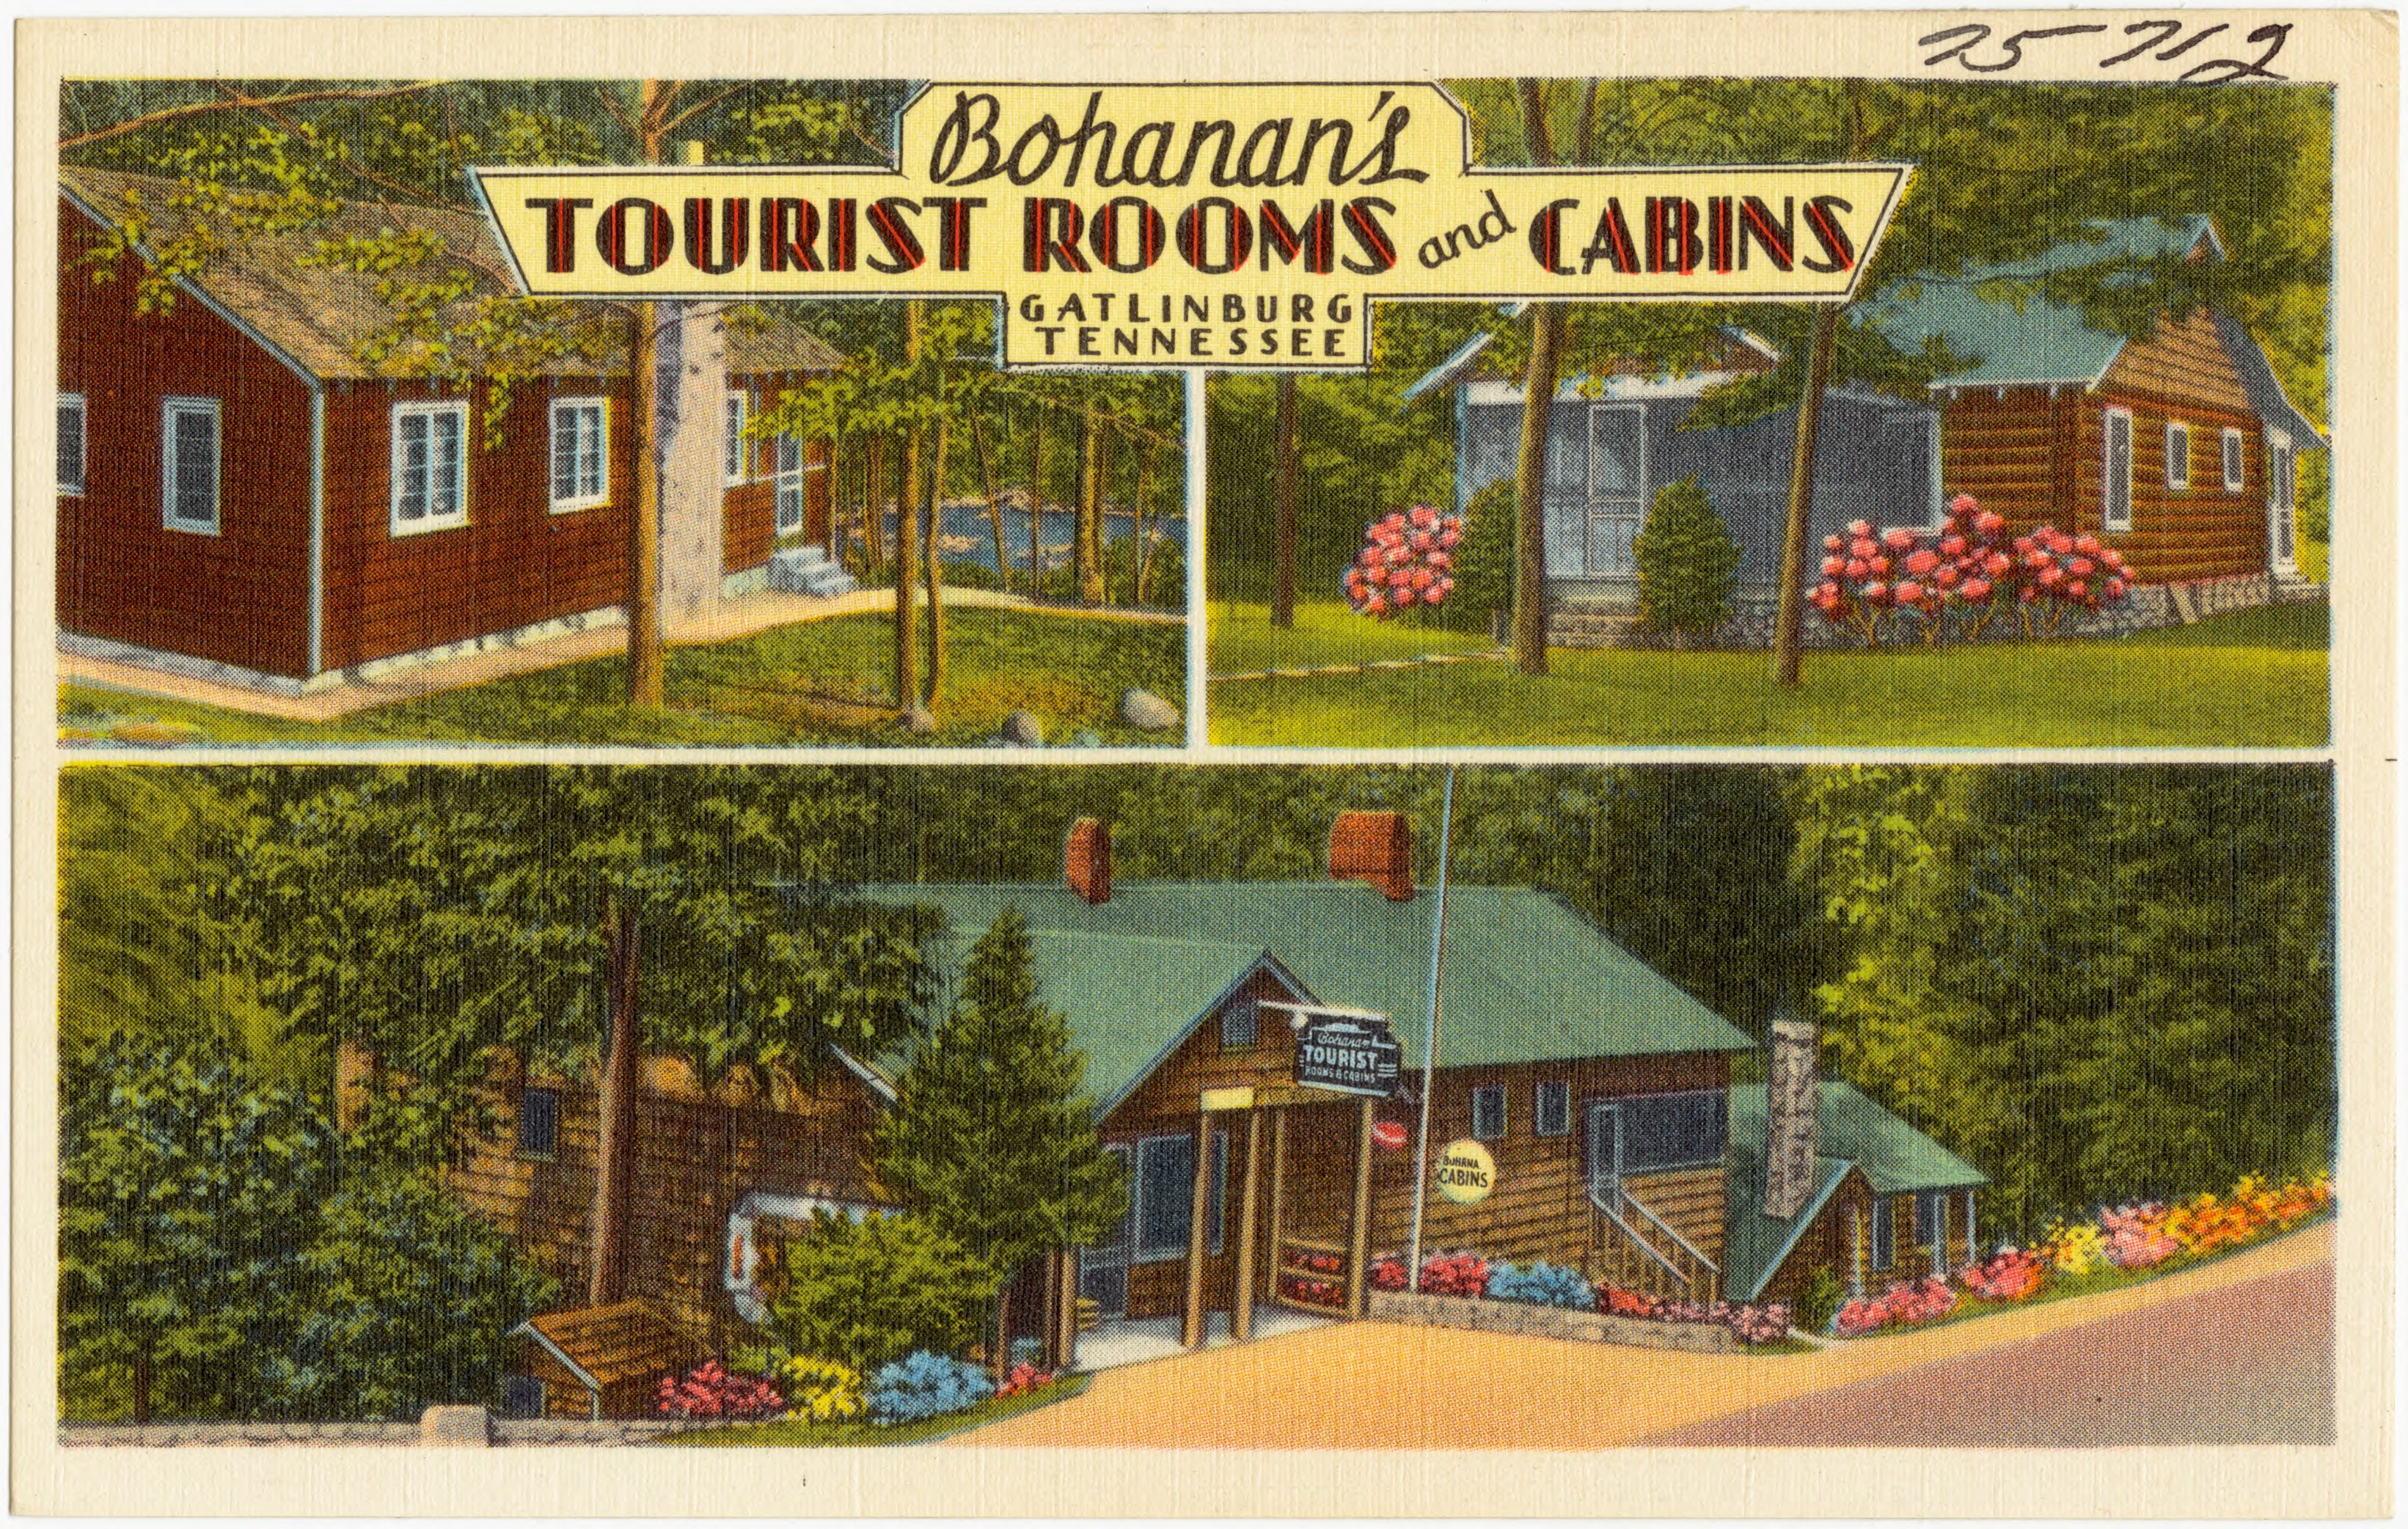 tourist cabins file wiki bohanan and tennessee gatlinburg s rooms